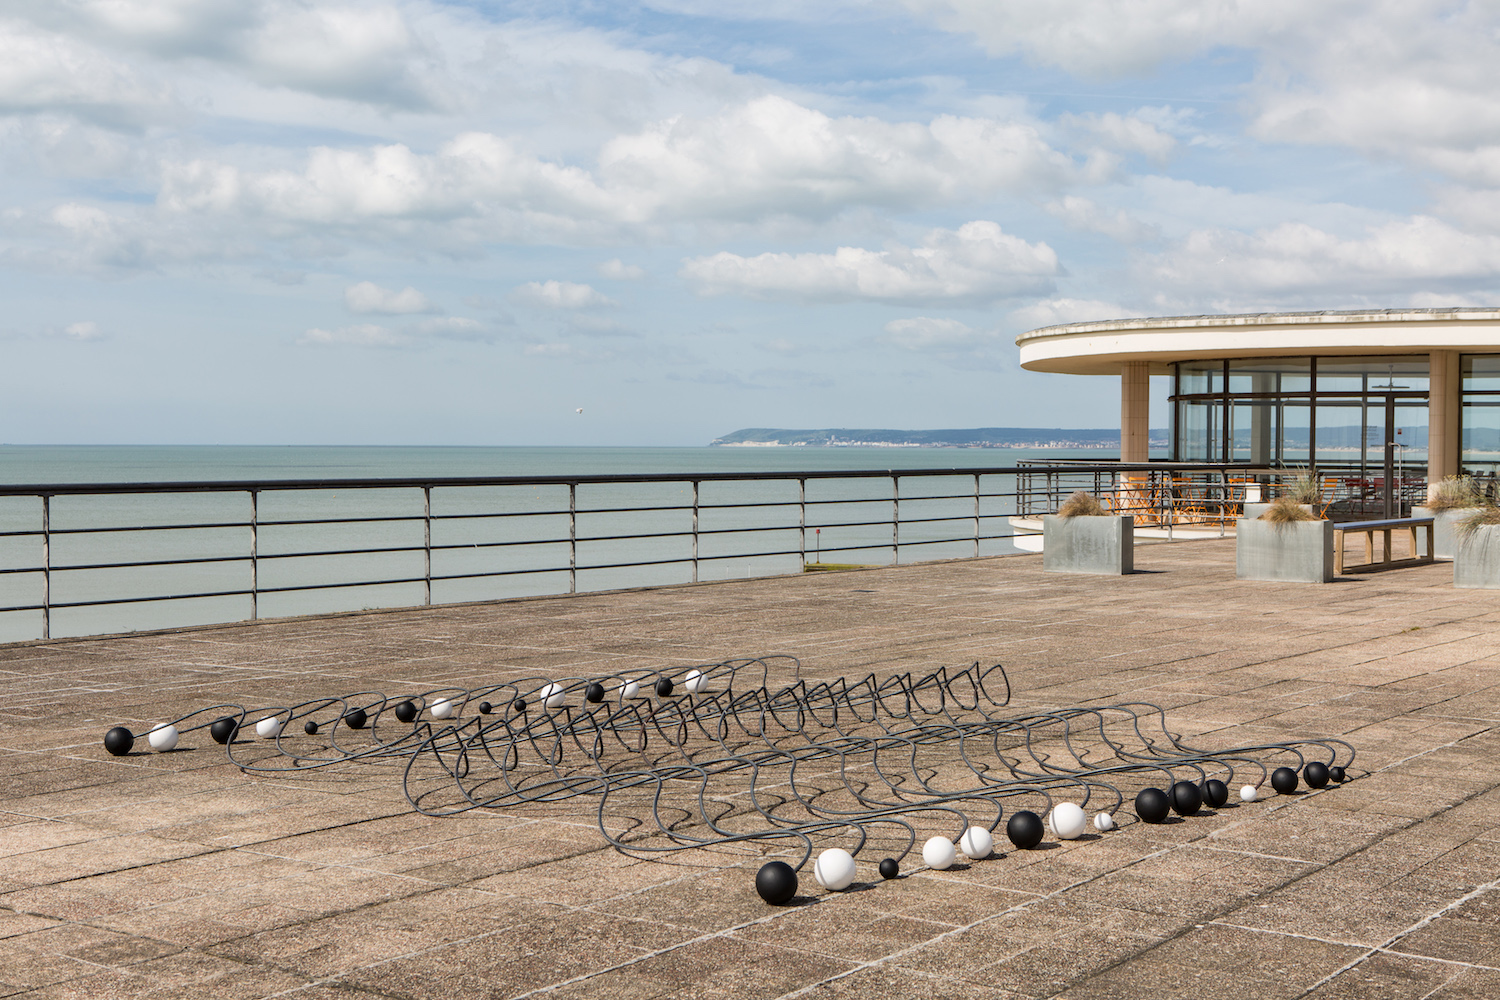 Installation view of 'Alison Wilding: Right Here and Out There' at the De La Warr Pavilion. Courtesy the artist and Karsten Schubert London. Photo © Rob Harris.